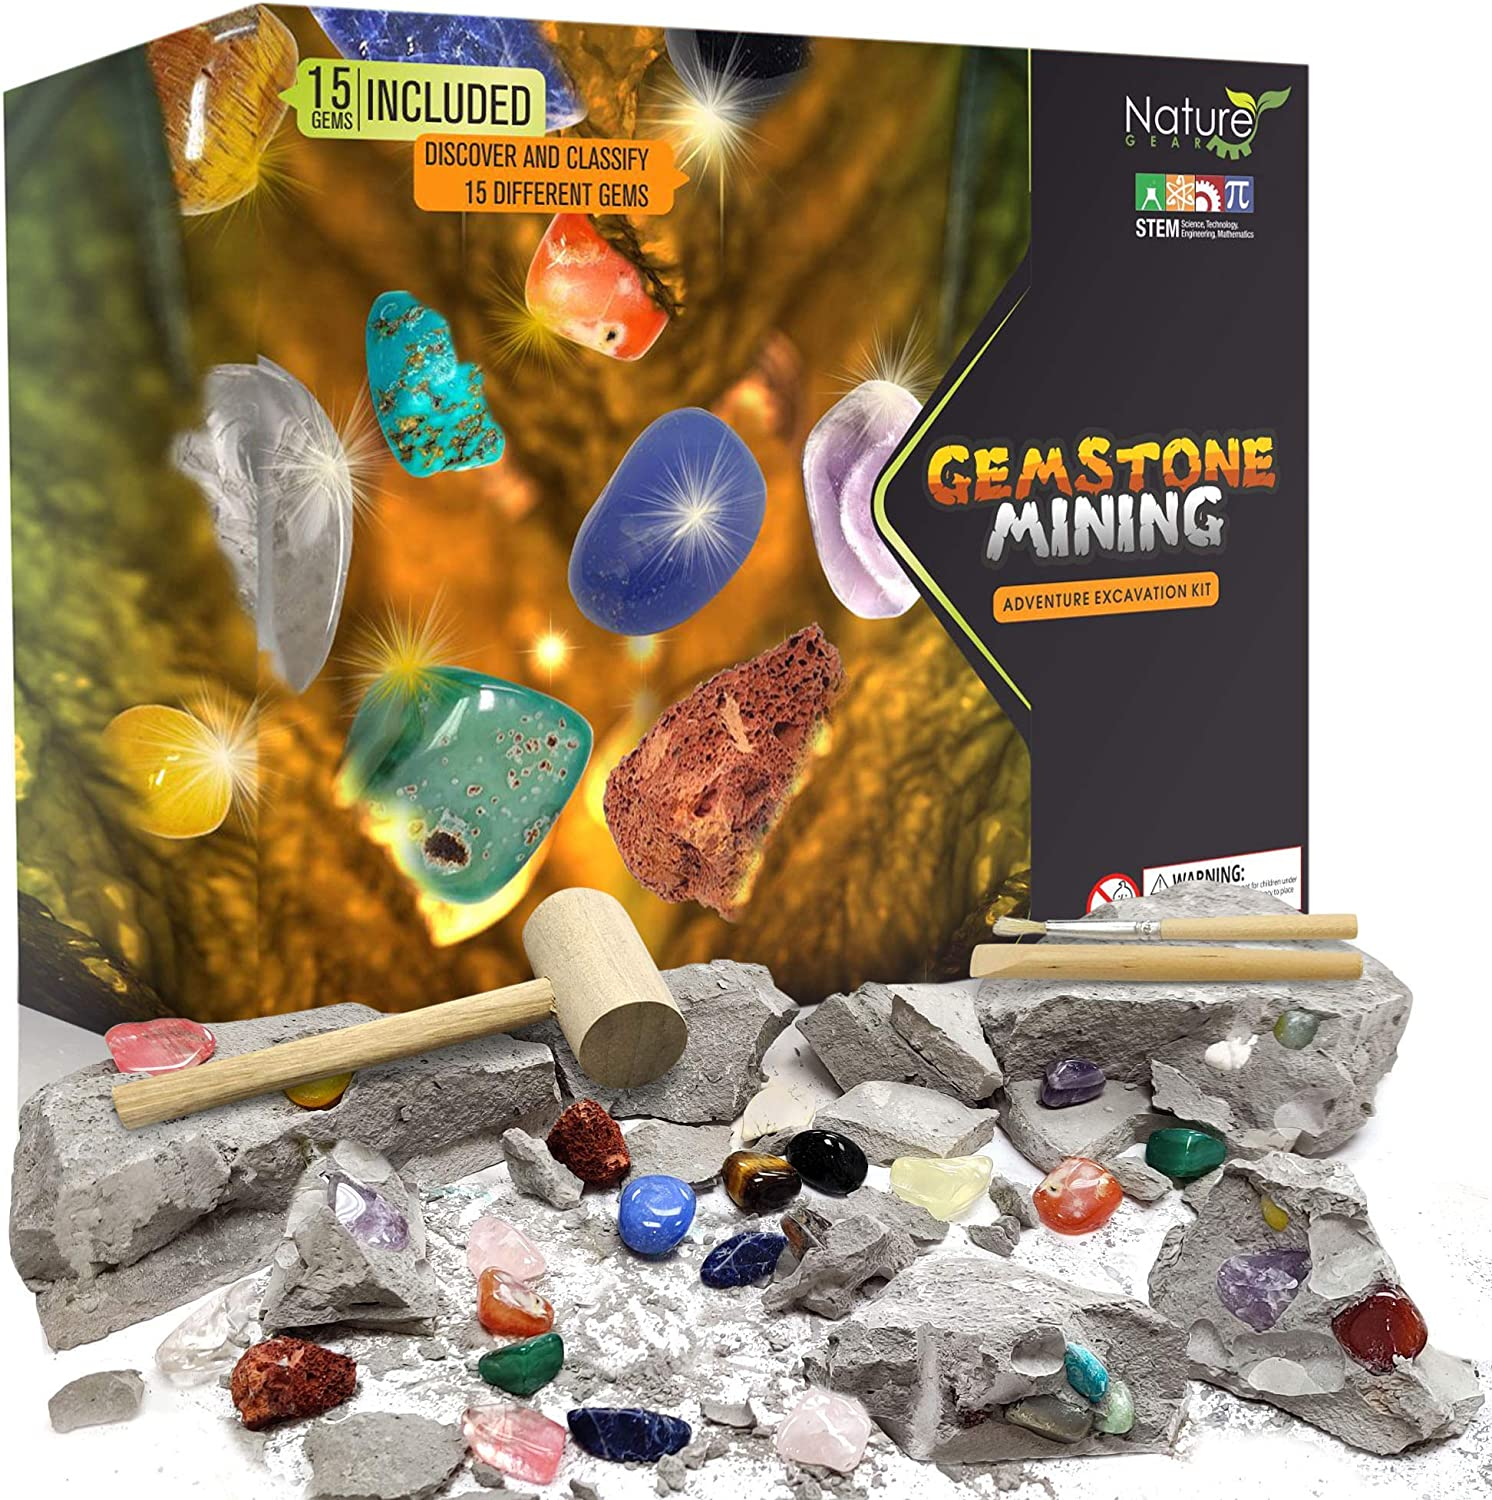 Nature Gear Gemstone Mining Excavation - Discover 15 Precious Gems - Mining Adventure Kit - Science STEM Learning Kids Activity